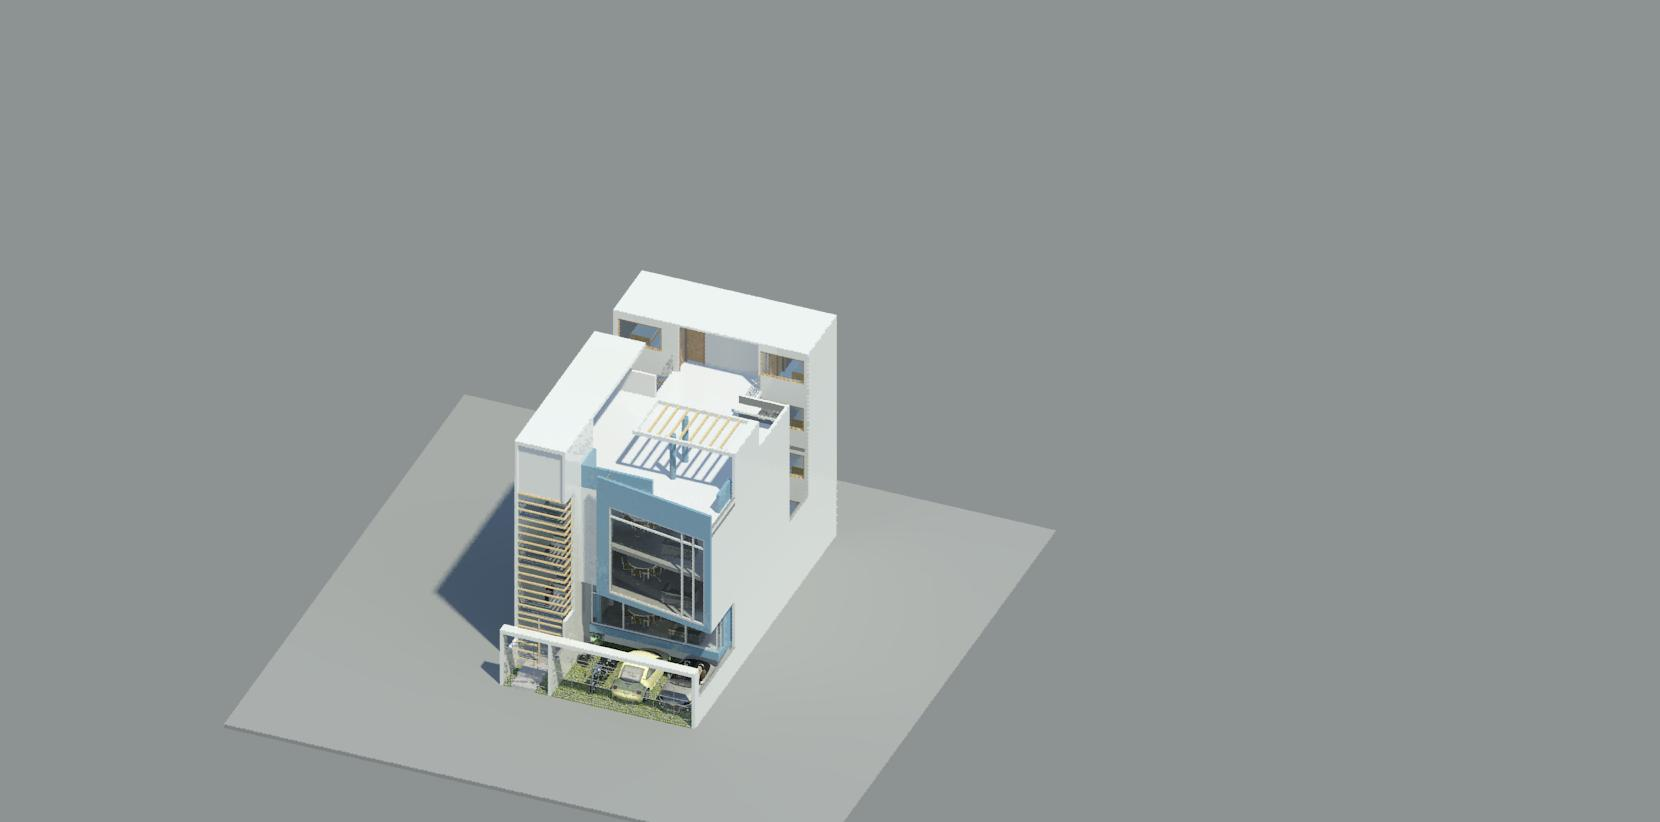 Renders Revit Architecture 2011 - Juan Pippo 20